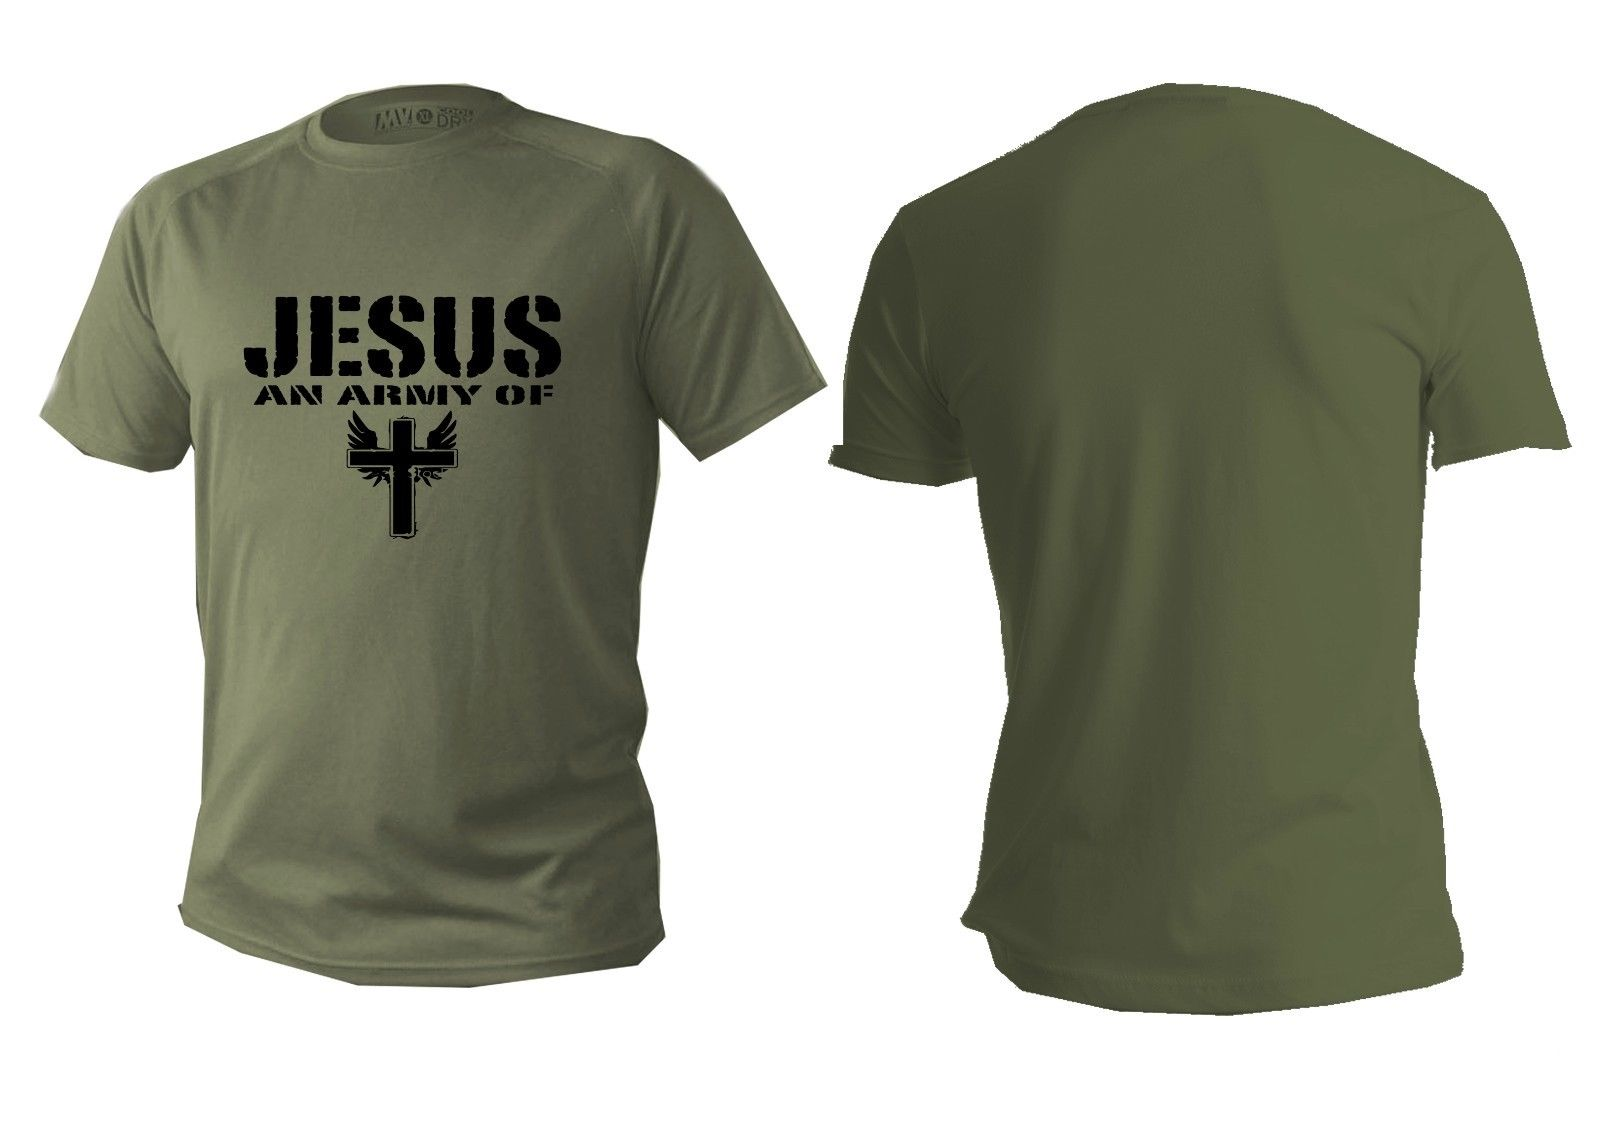 2018 New Summer Casual Men T-shirt T shirt Mens dry fit short sleeve green olive usa army military shirts man jesus